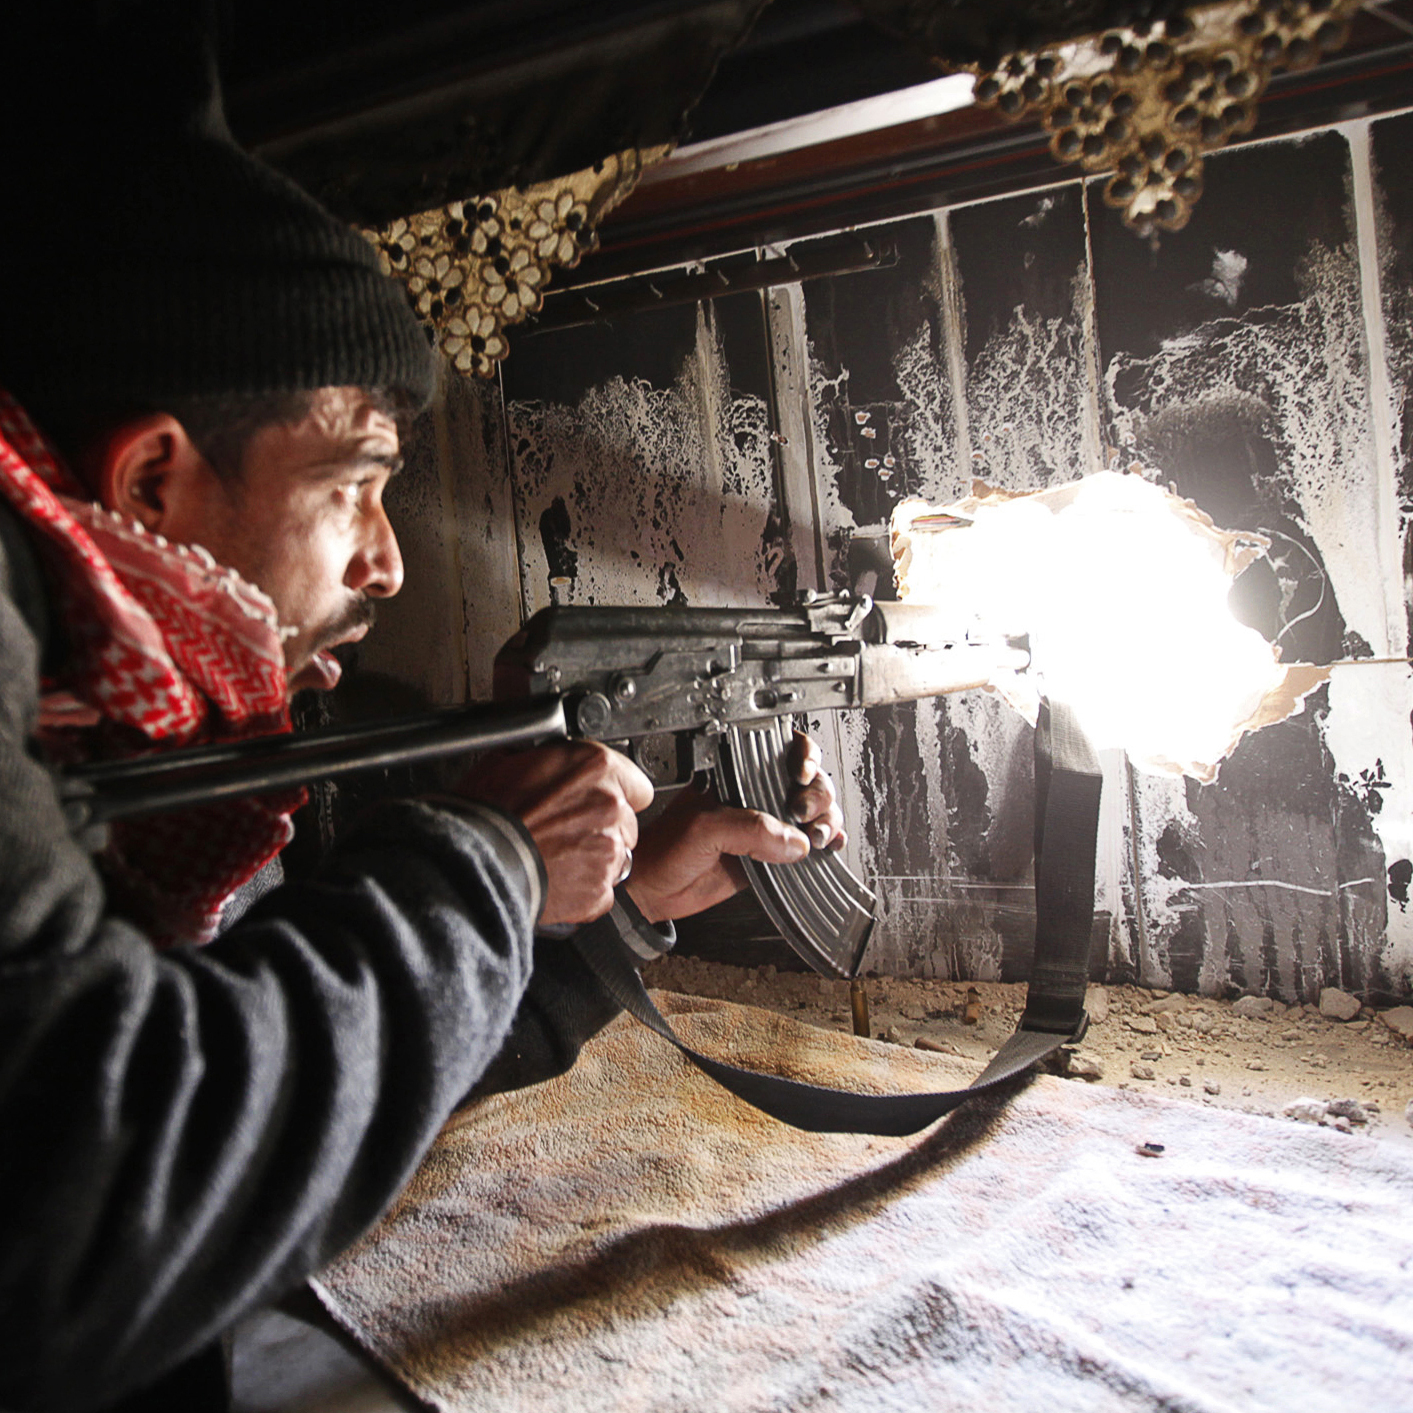 All of the photos in this slideshow were taken by Nour Kelze but published under the pseudonym Zain Karam. Kelze recently decided to begin publishing her photos under her real name. Here, a Free Syrian Army fighter takes up position inside a burned-out room in Aleppo, Syria, in November 2012.